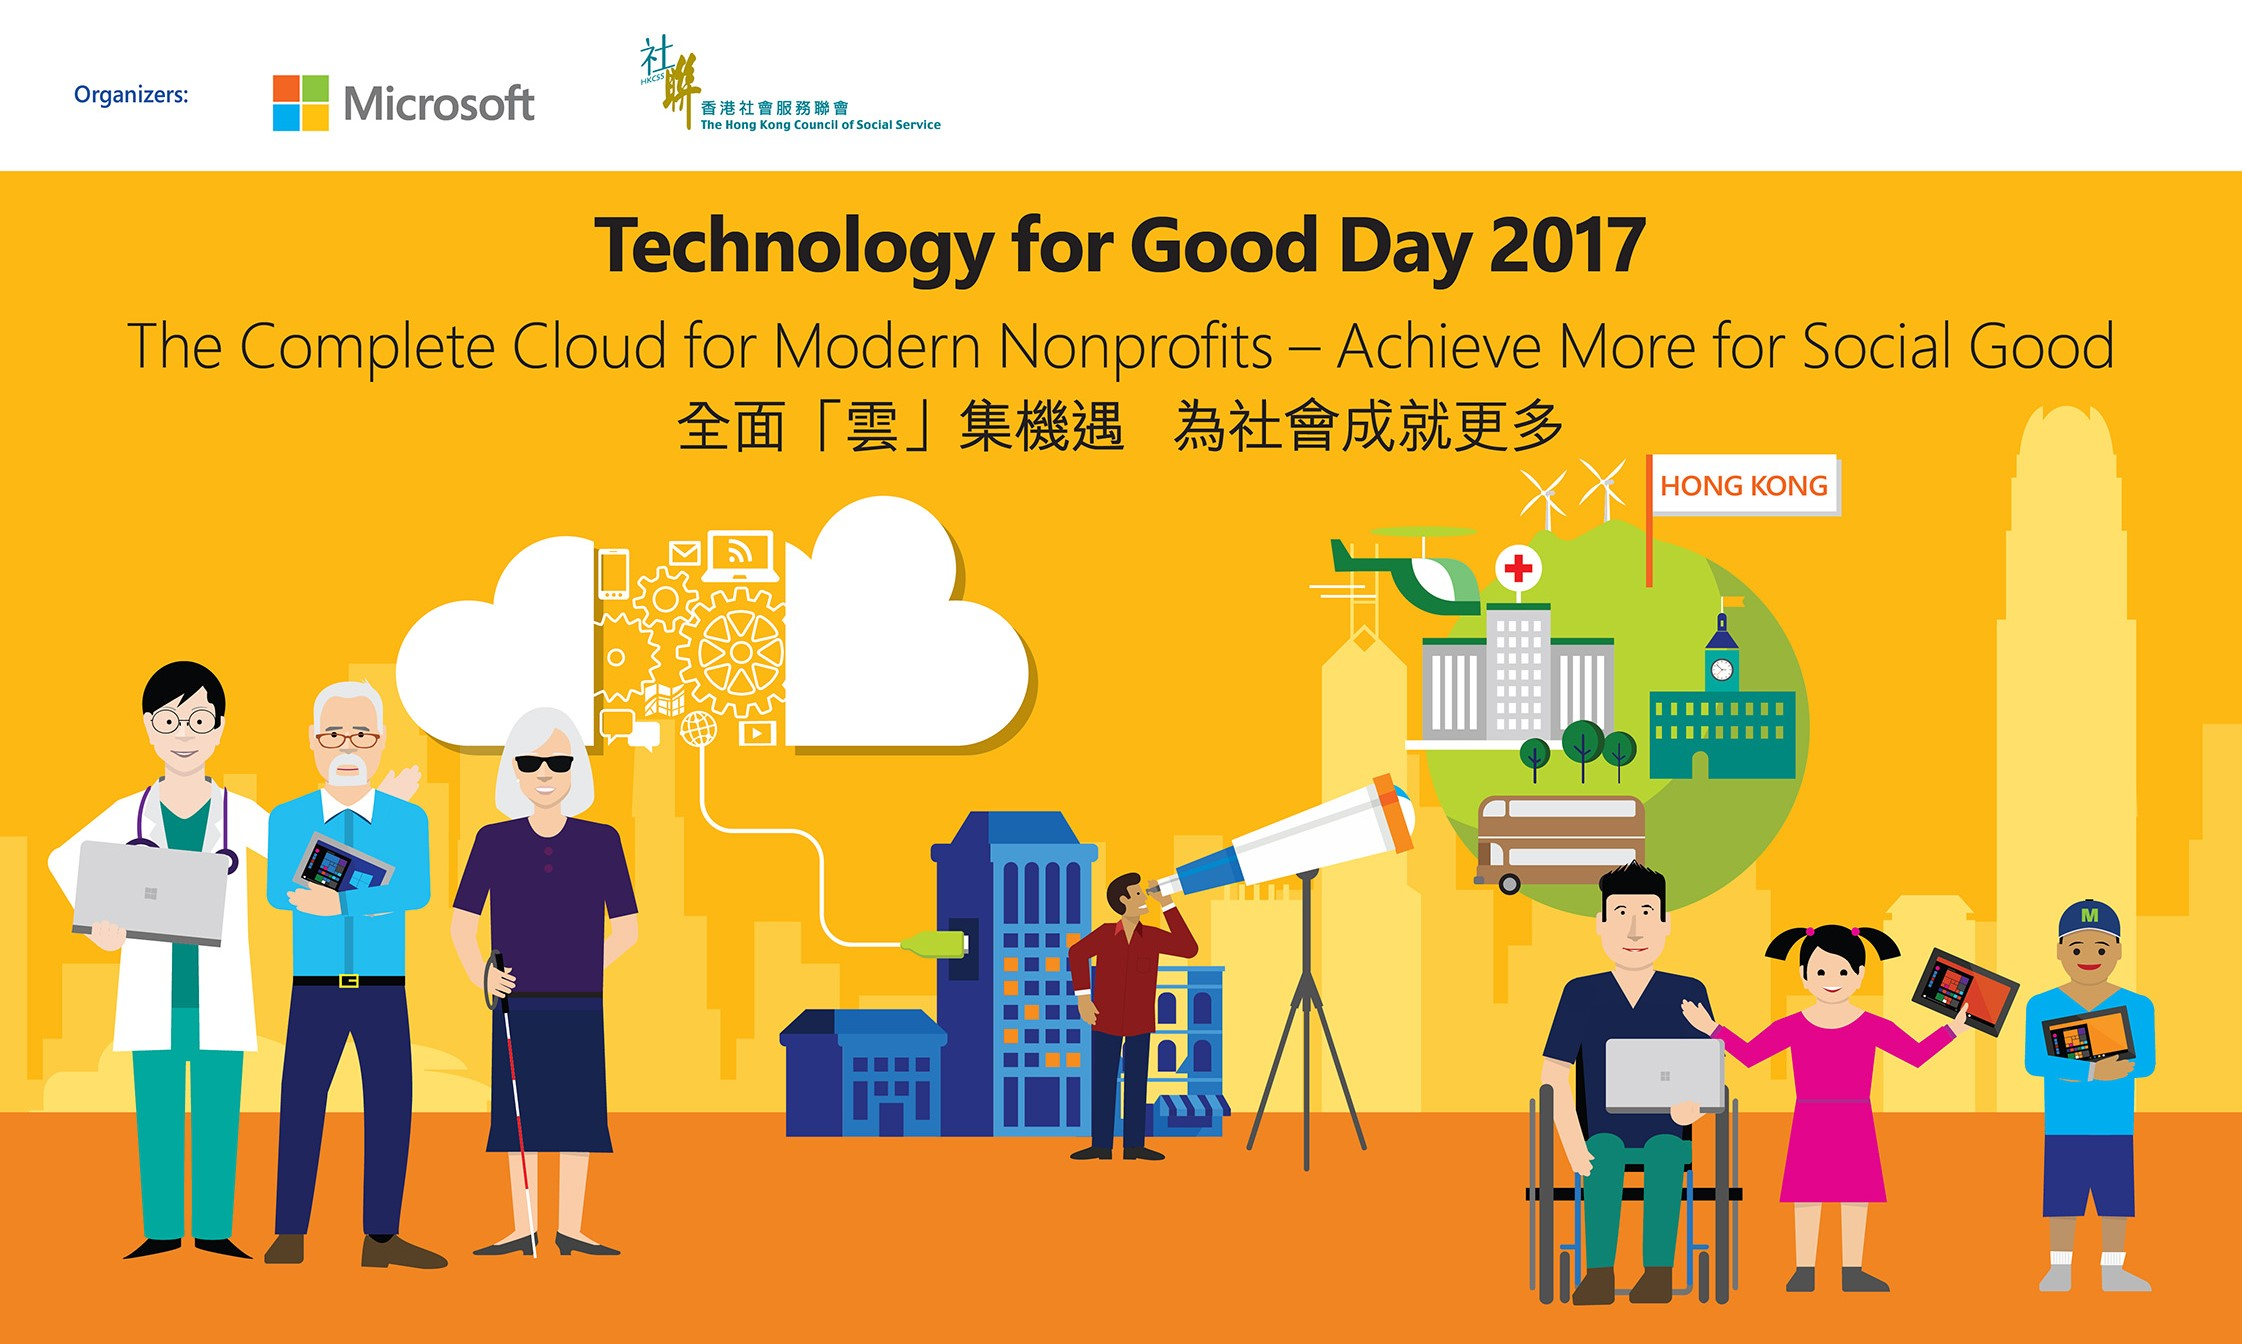 Technology for Good Day 2017